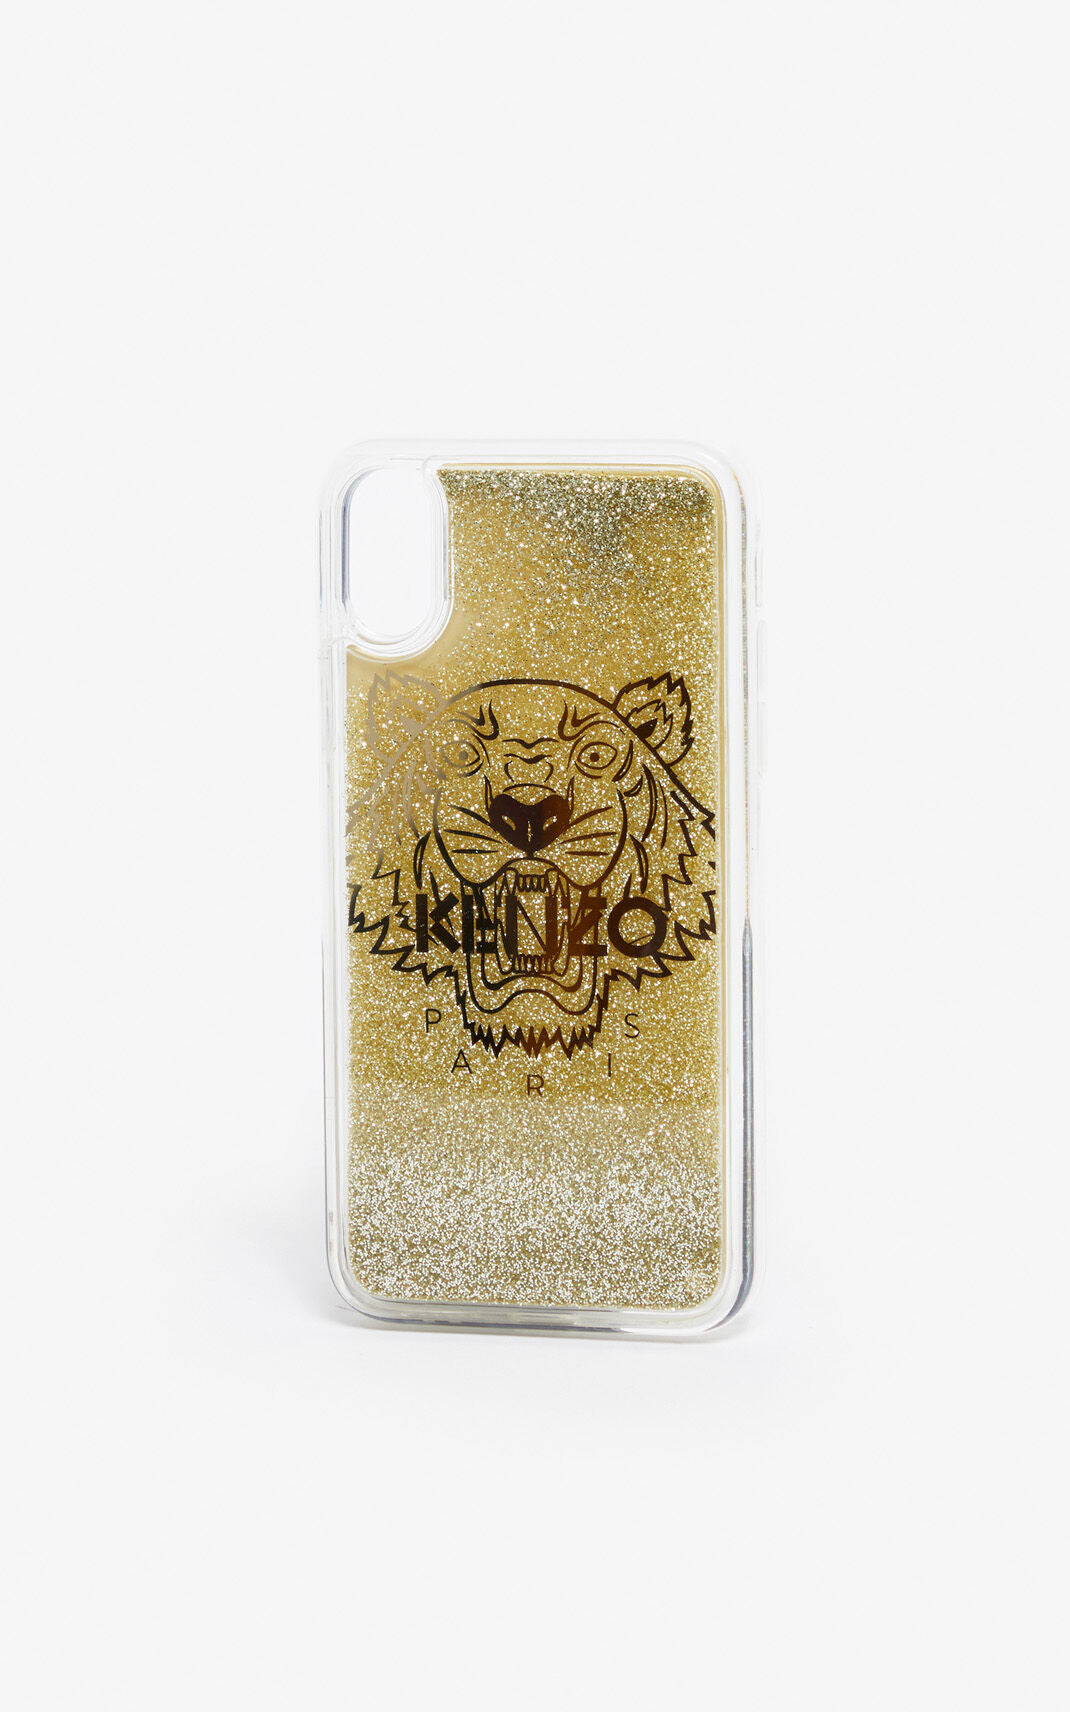 Coque iphone xr kenzo blanche